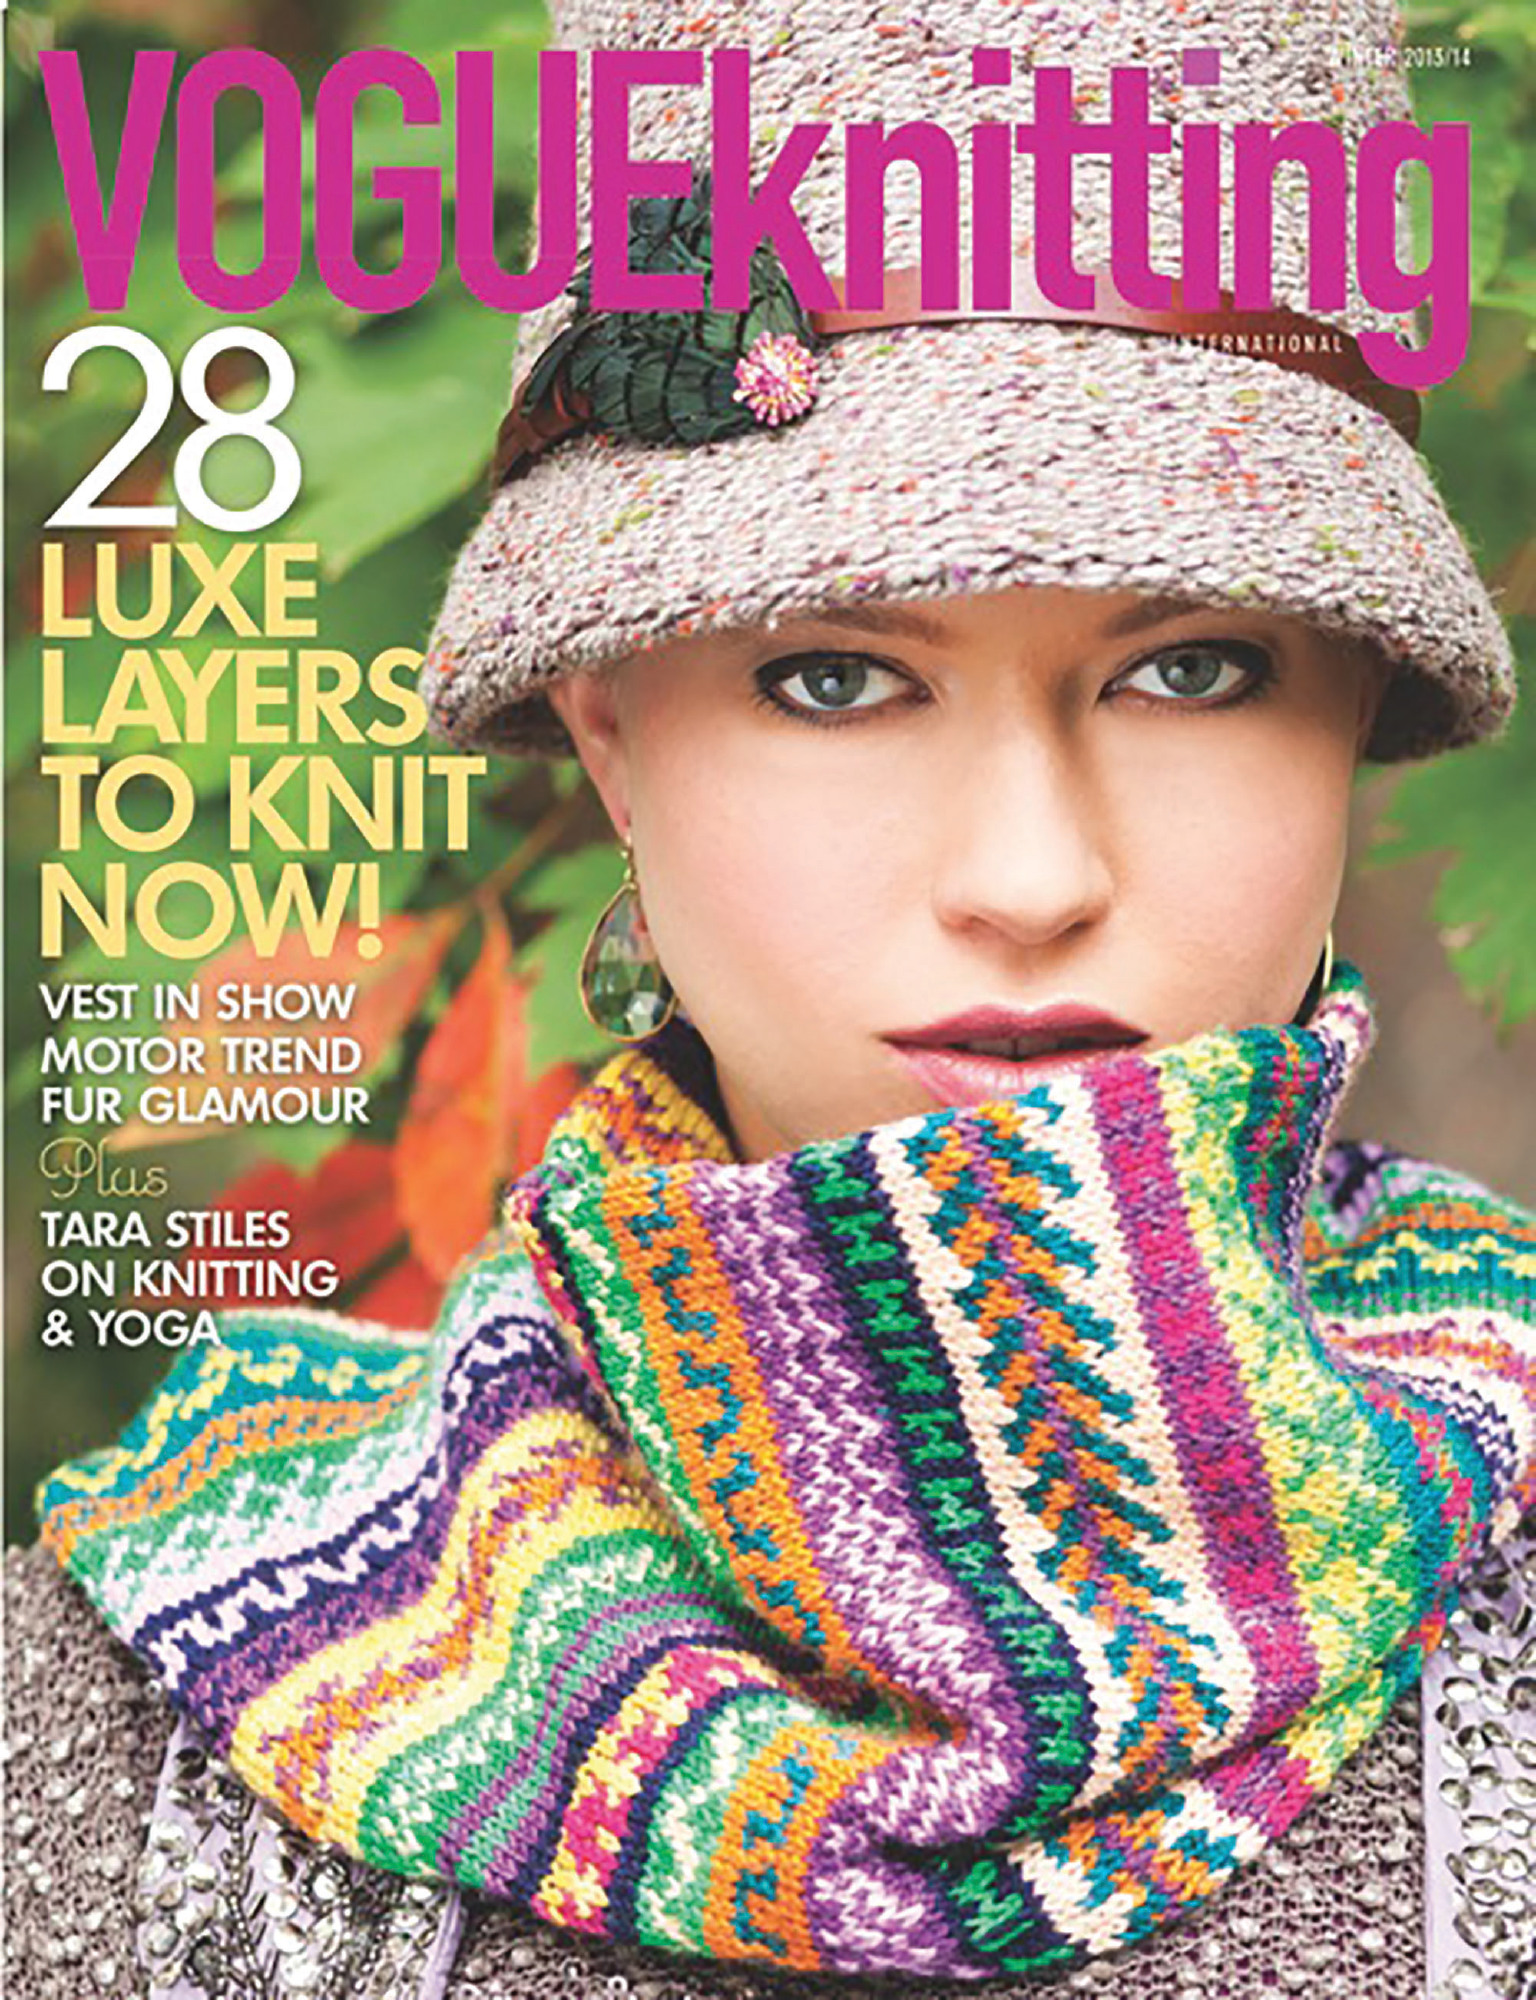 Mobius Cowl - By: Maie Landra   Knit In Koigu KPM   Vogue Knitting Winter 2013/2014